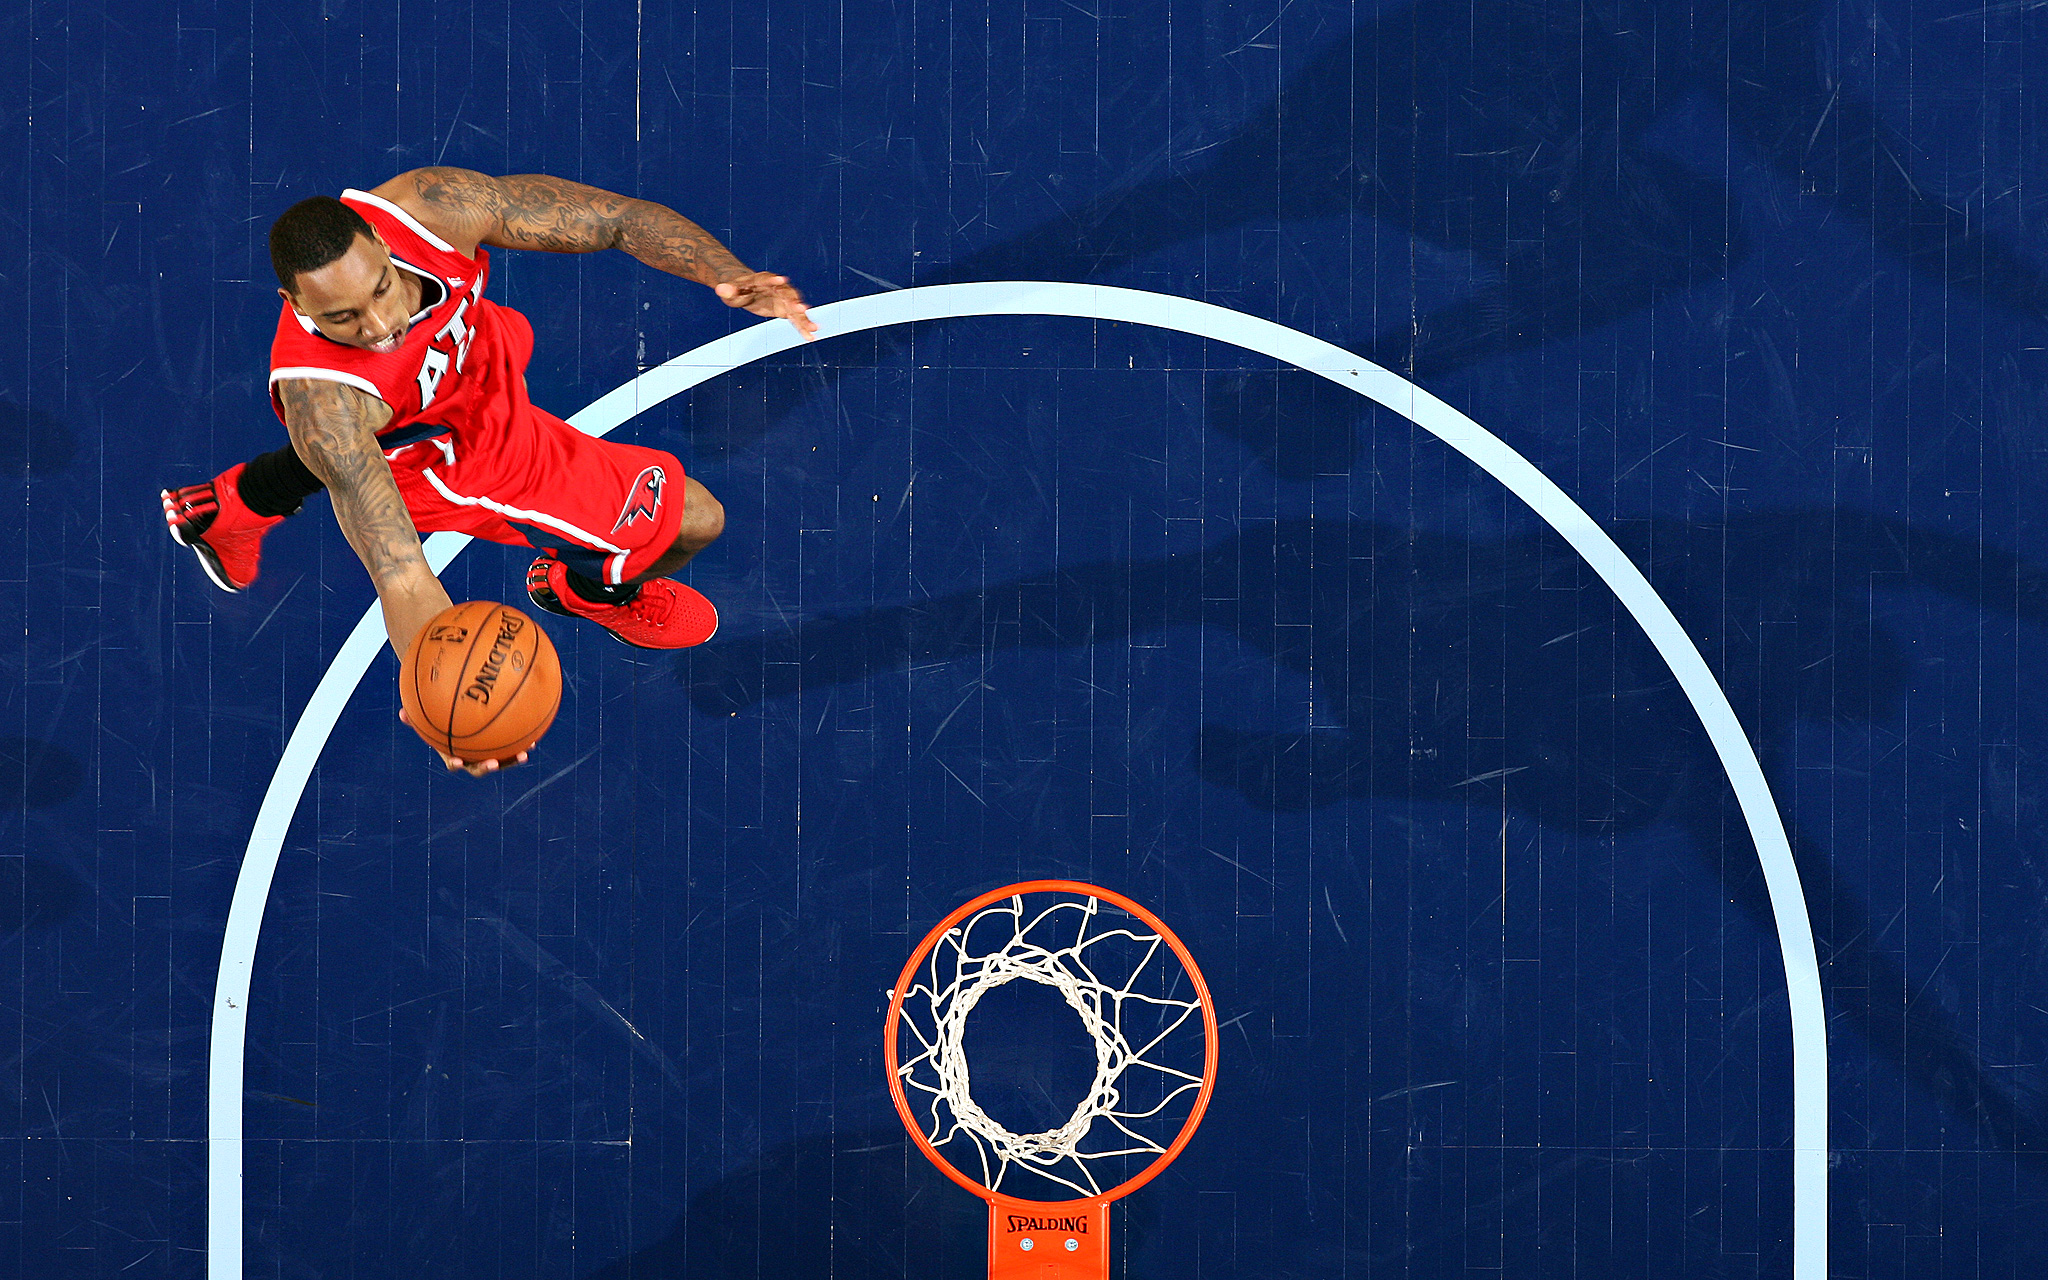 Teague For Two